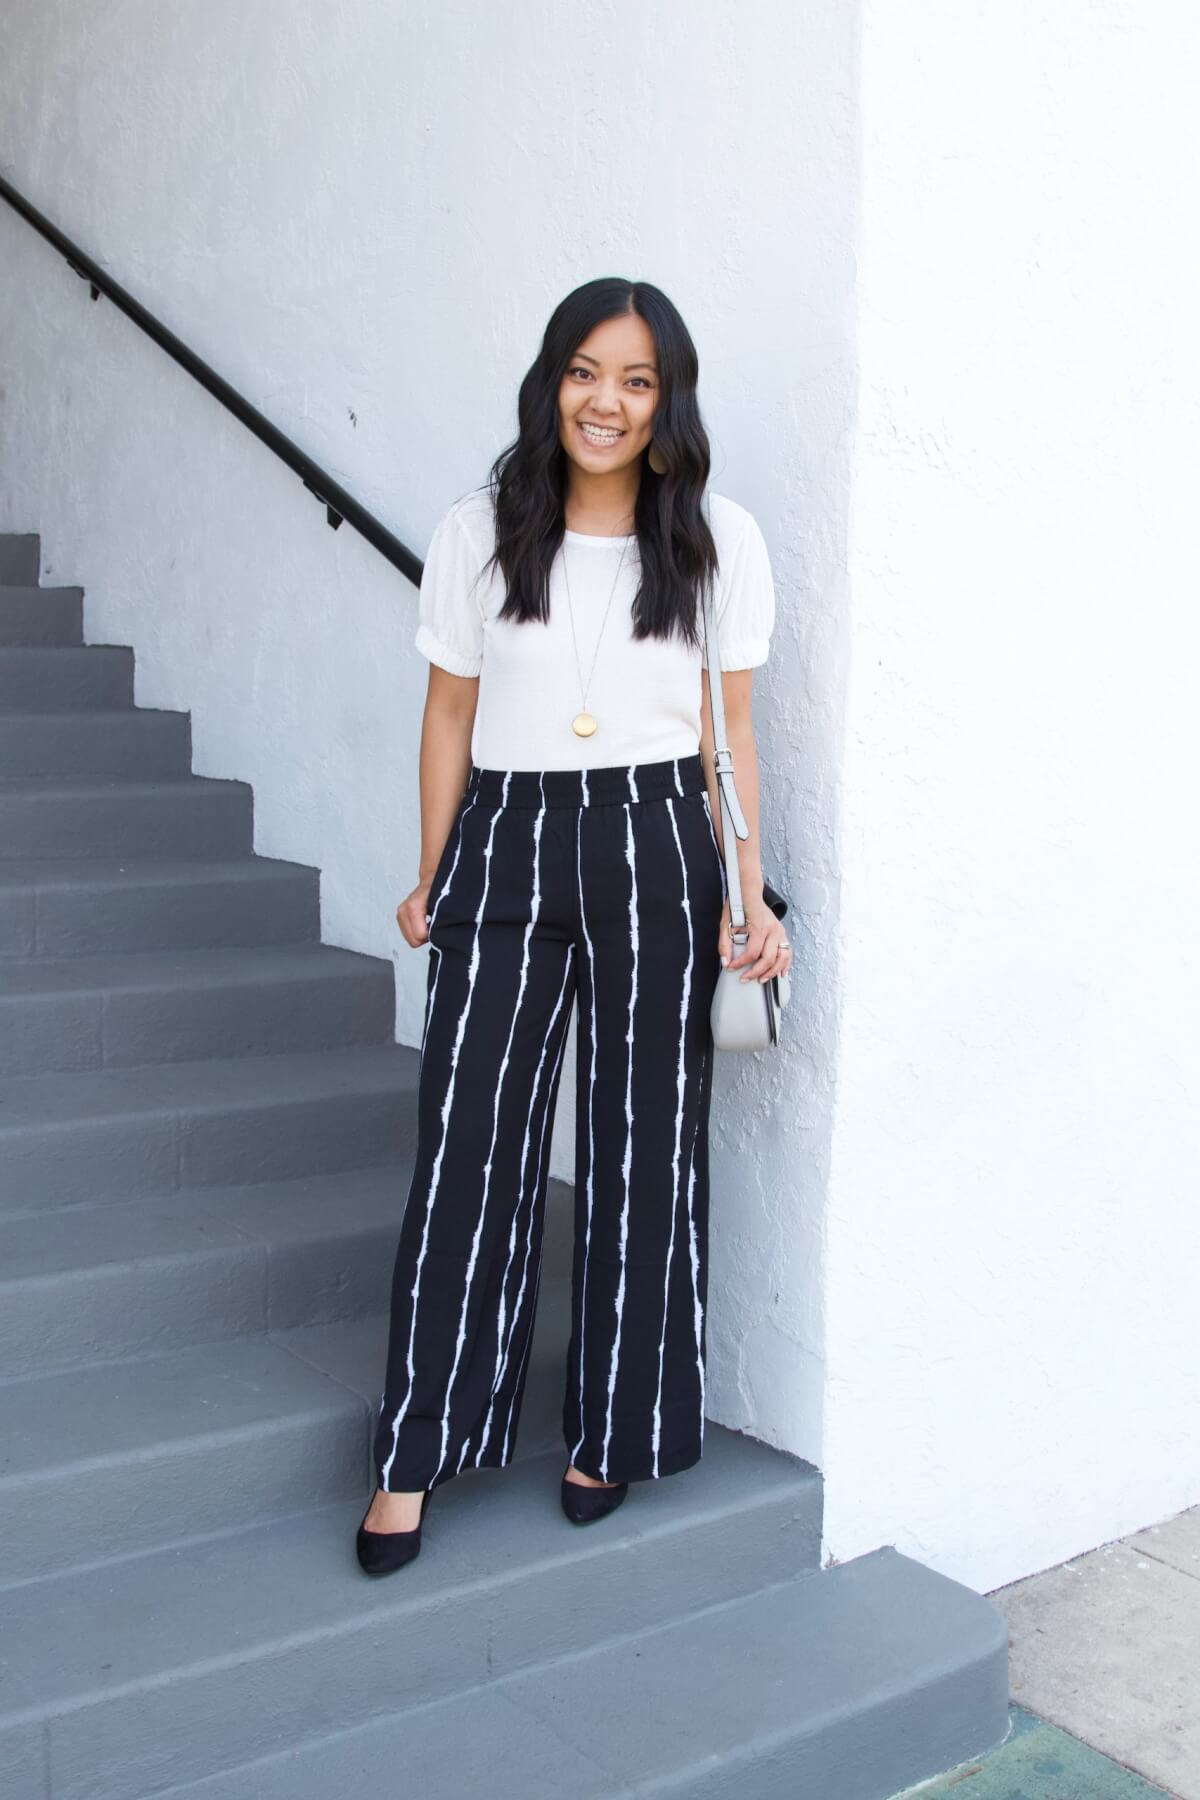 Elevated Nicer Casual Outfit Summer to Early Fall Transition: white puff sleeve top + black and white striped wide leg pants + black heels + white earrings + gold pendant necklace + gray crossbody purse